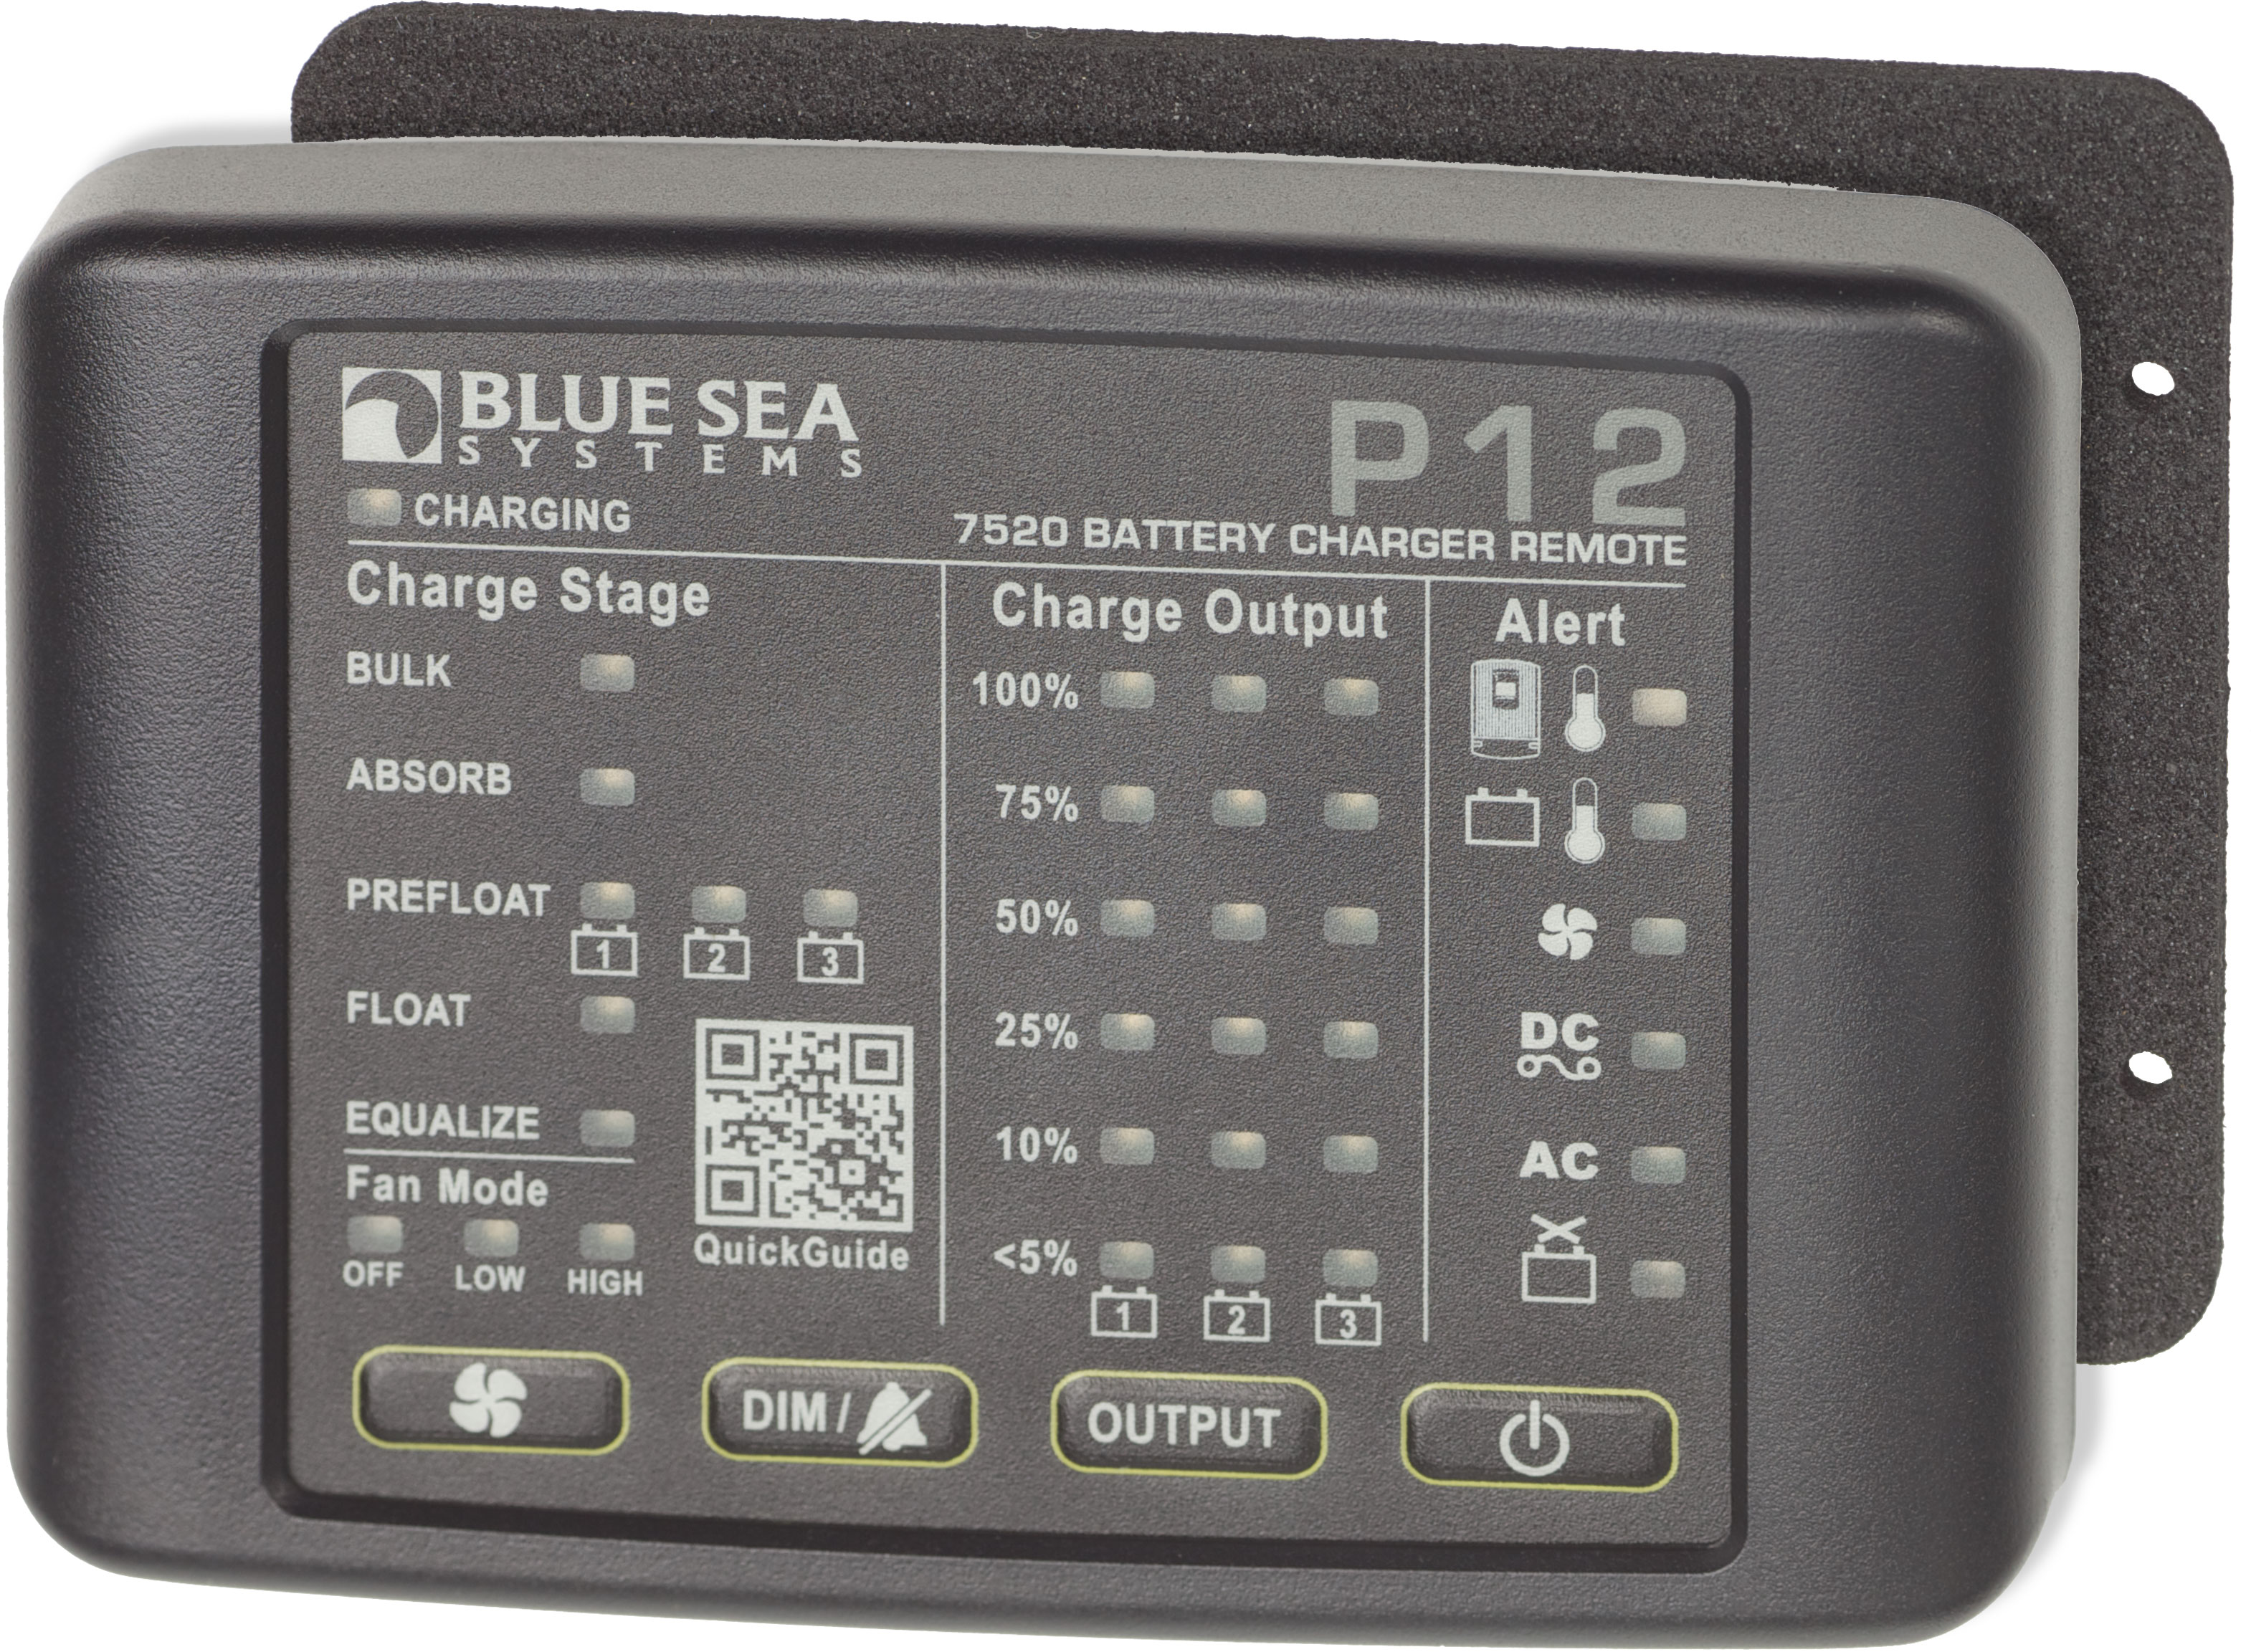 p12 battery charger led remote blue sea systems product image